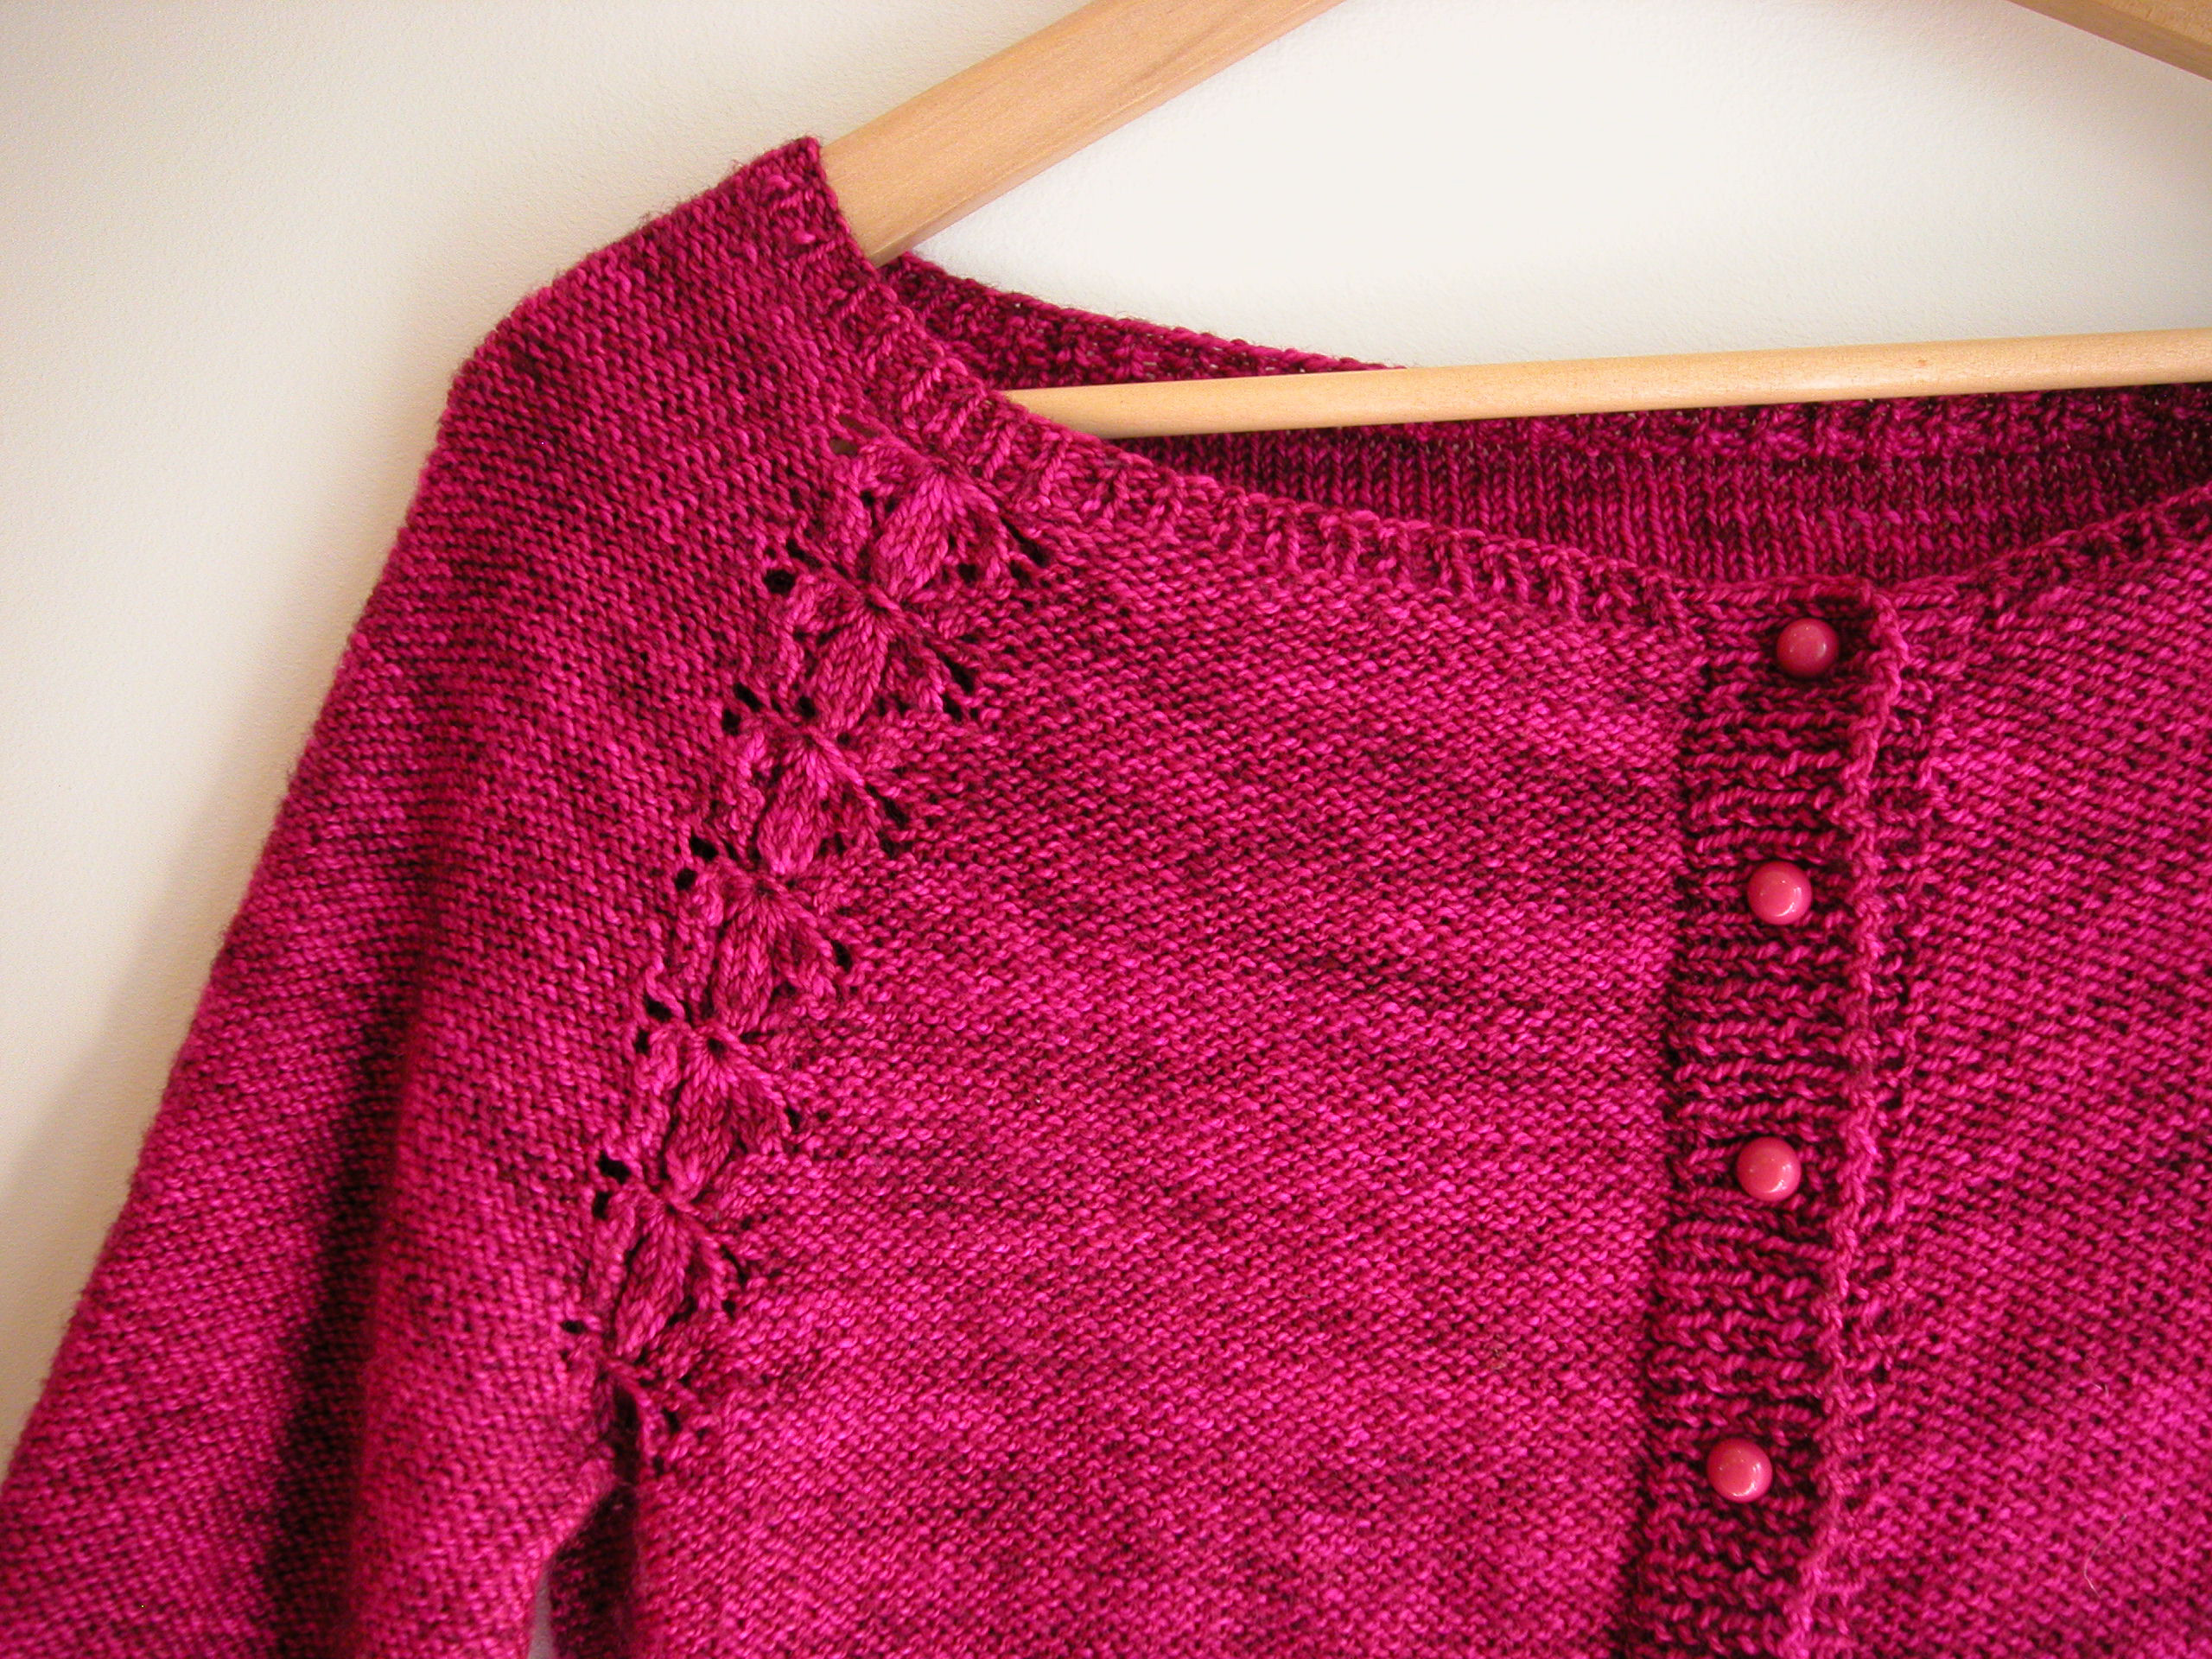 dcba83c3731e79 You can find the Lobelia pattern on Ravelry HERE and check out Pom Pom  Quarterly HERE